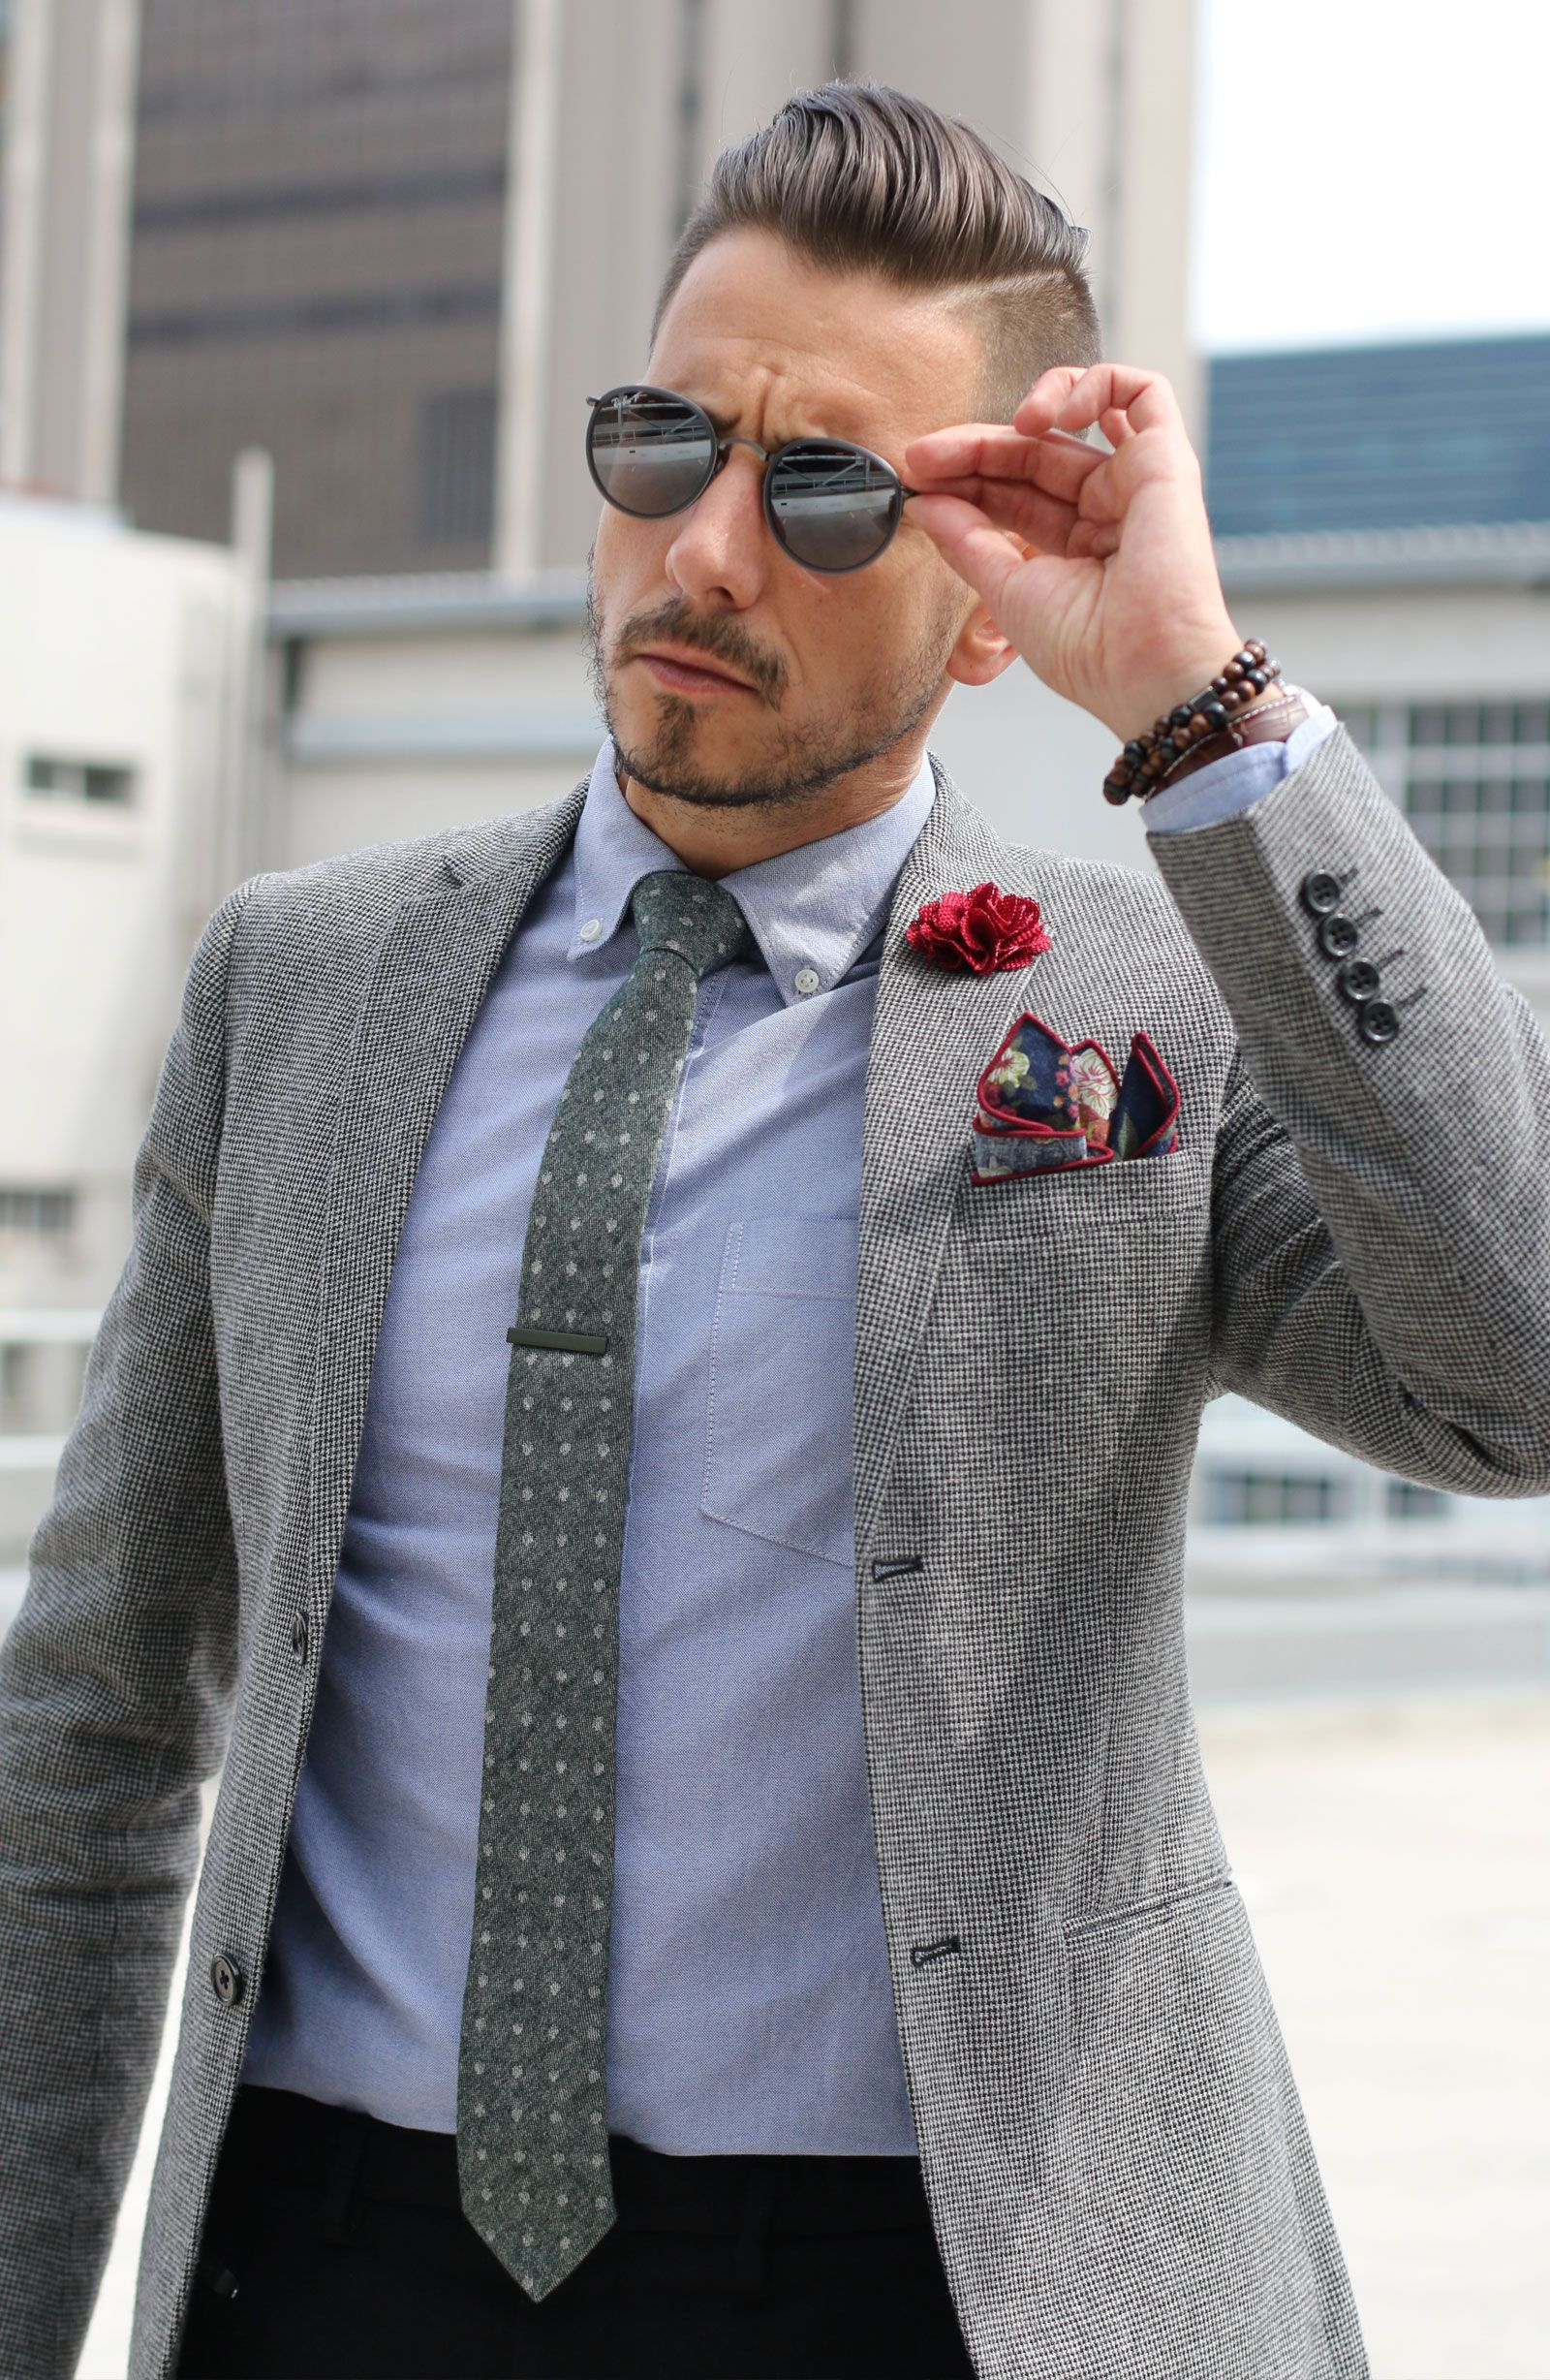 lapel pin to style the suit